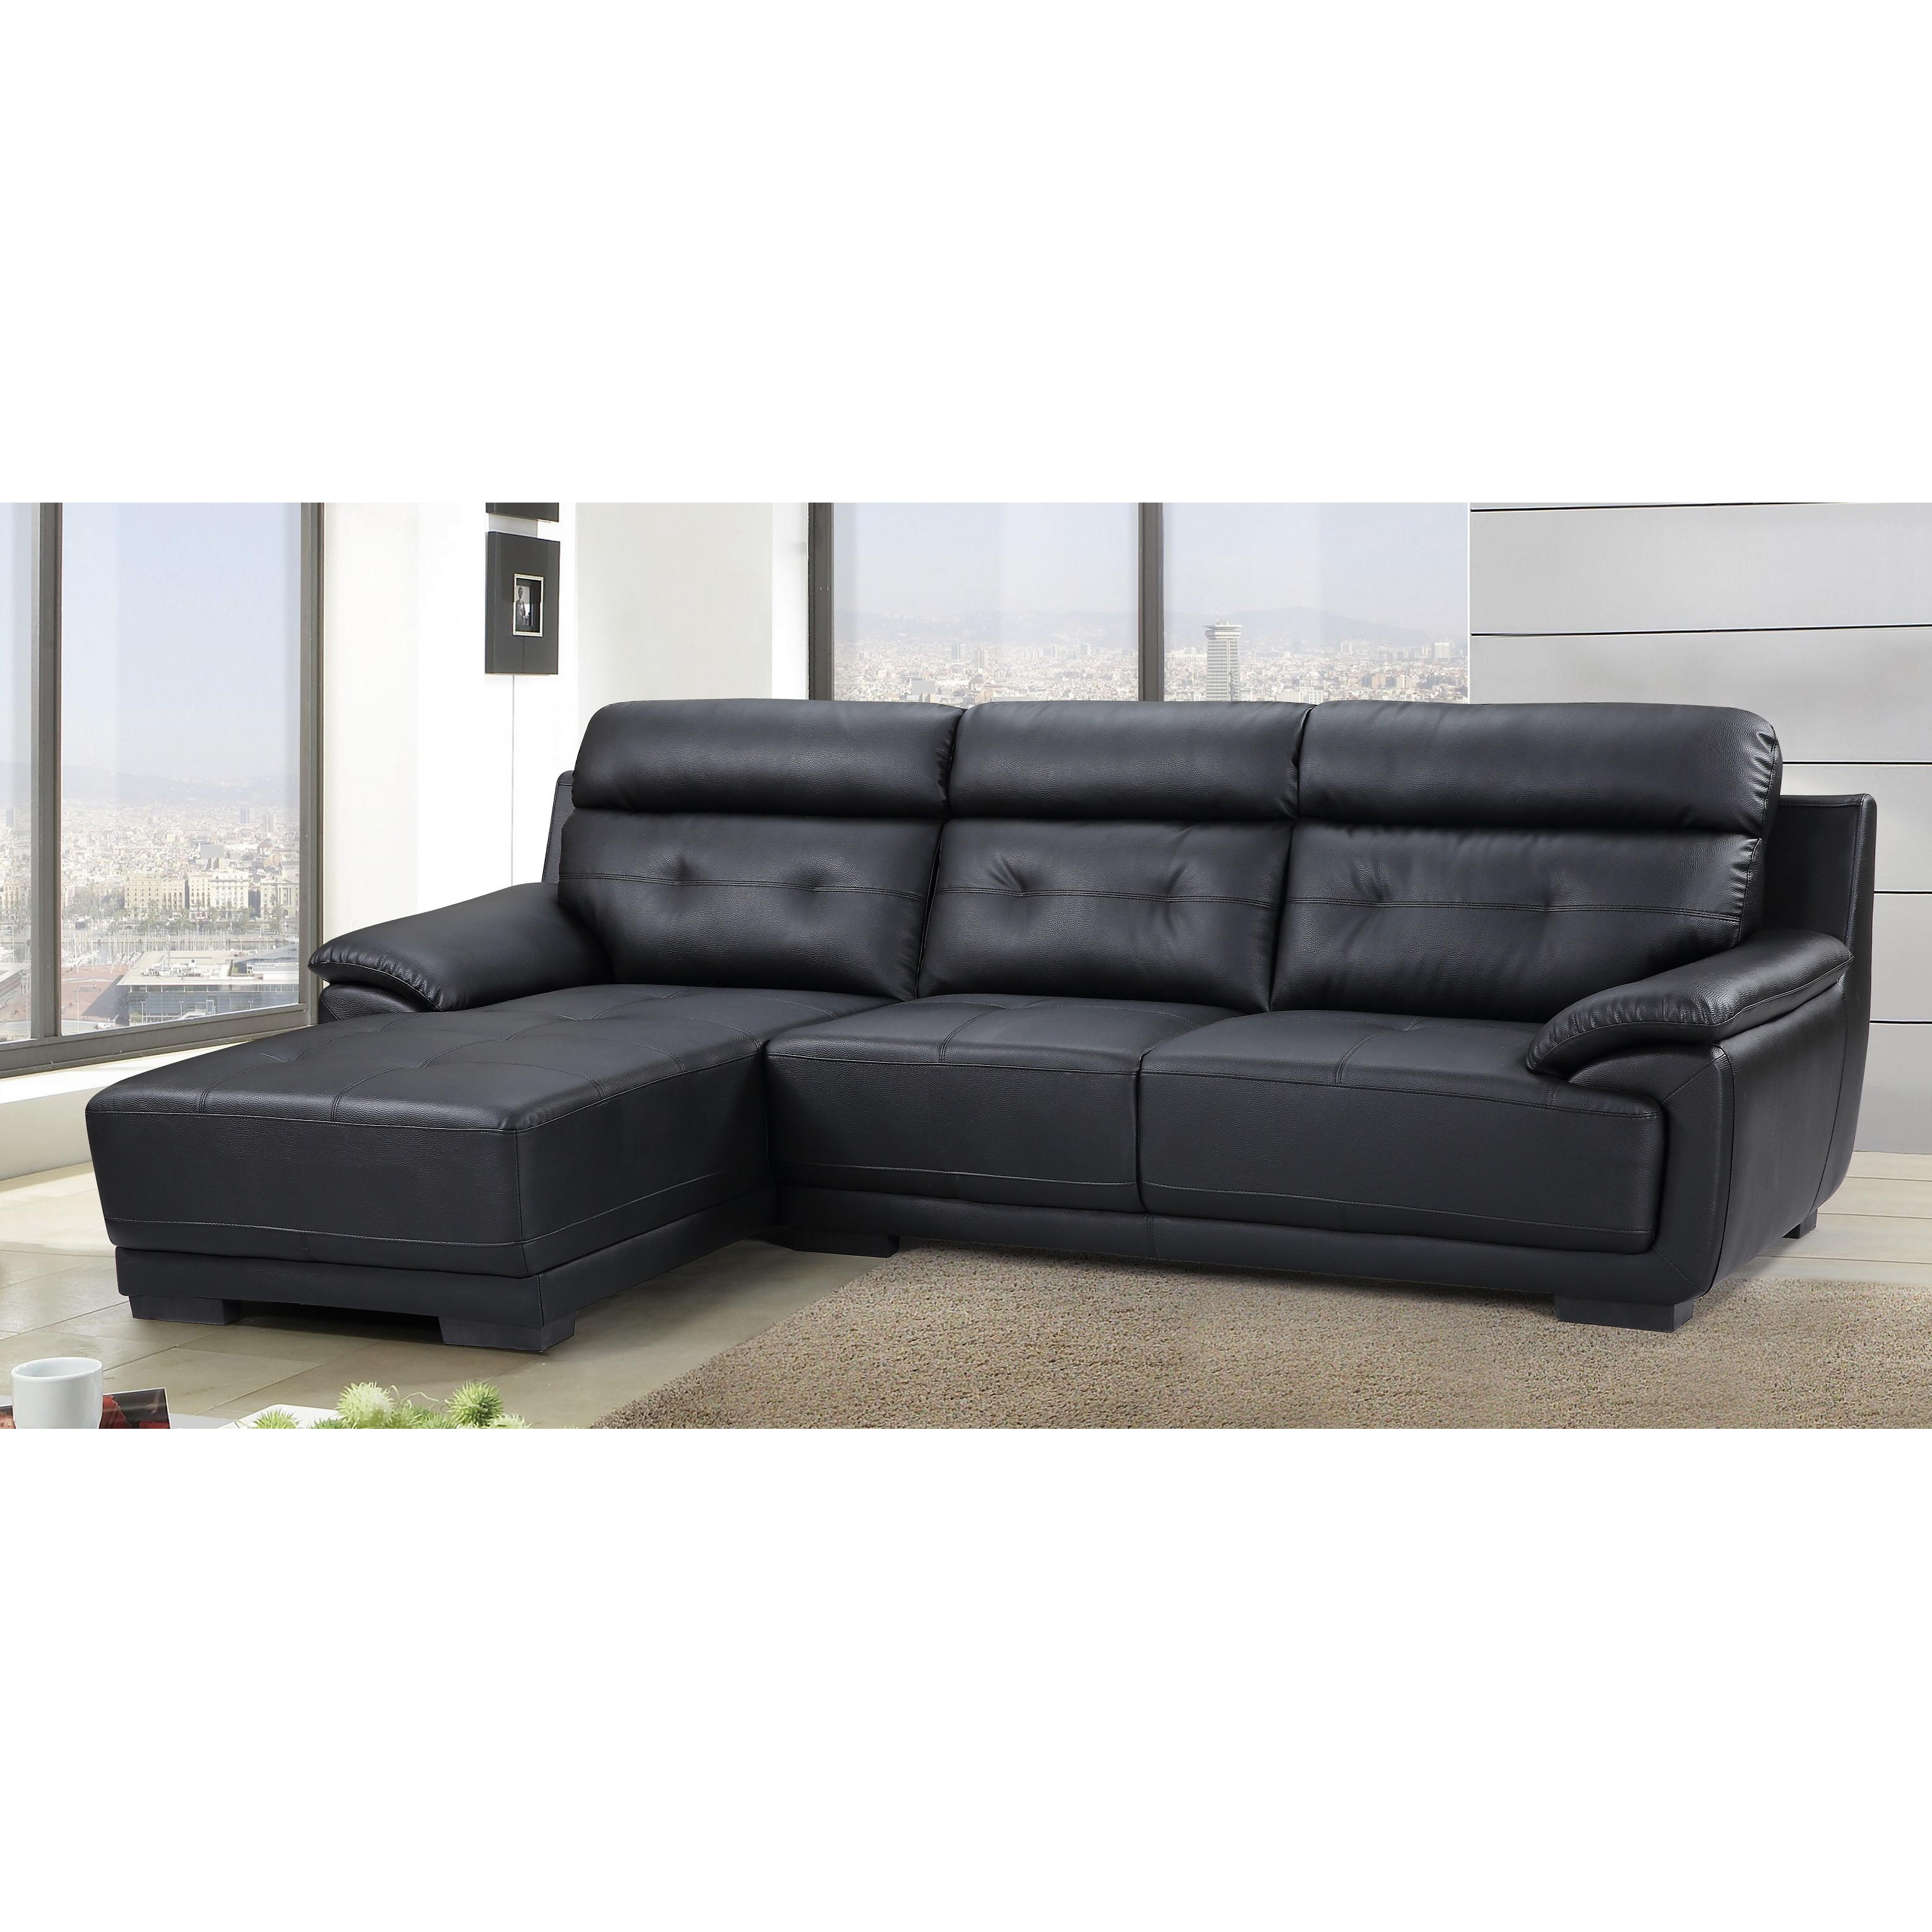 US Pride Furniture Amador Tufted Leather 2-pc Left Facing Sectional Sofa, Black, S0110L-2Pc